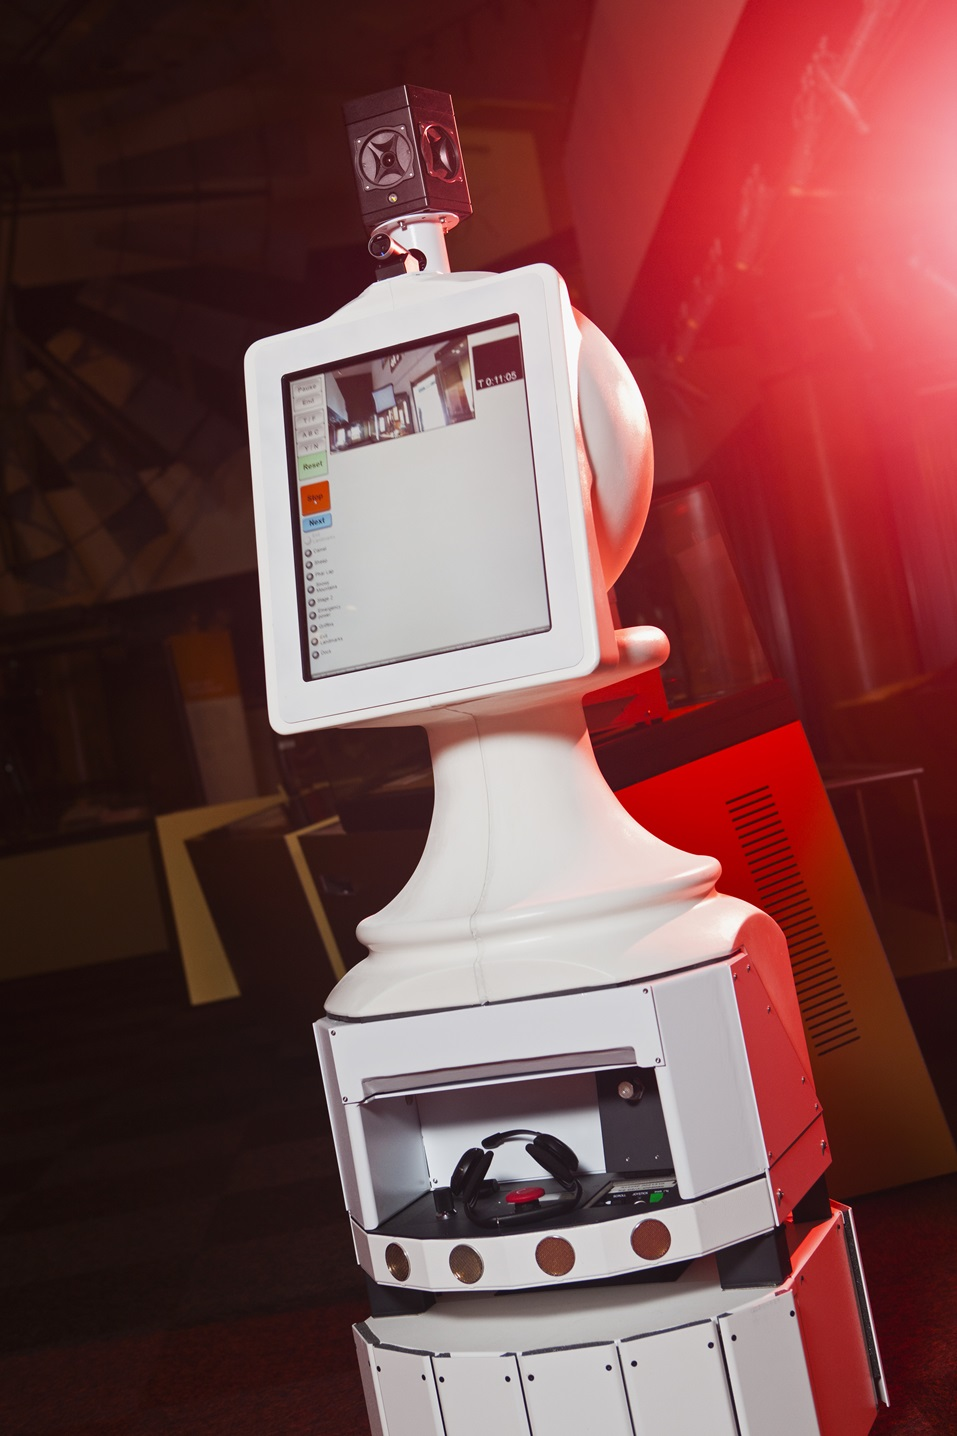 A telepresence robot found in the National Museum of Australia